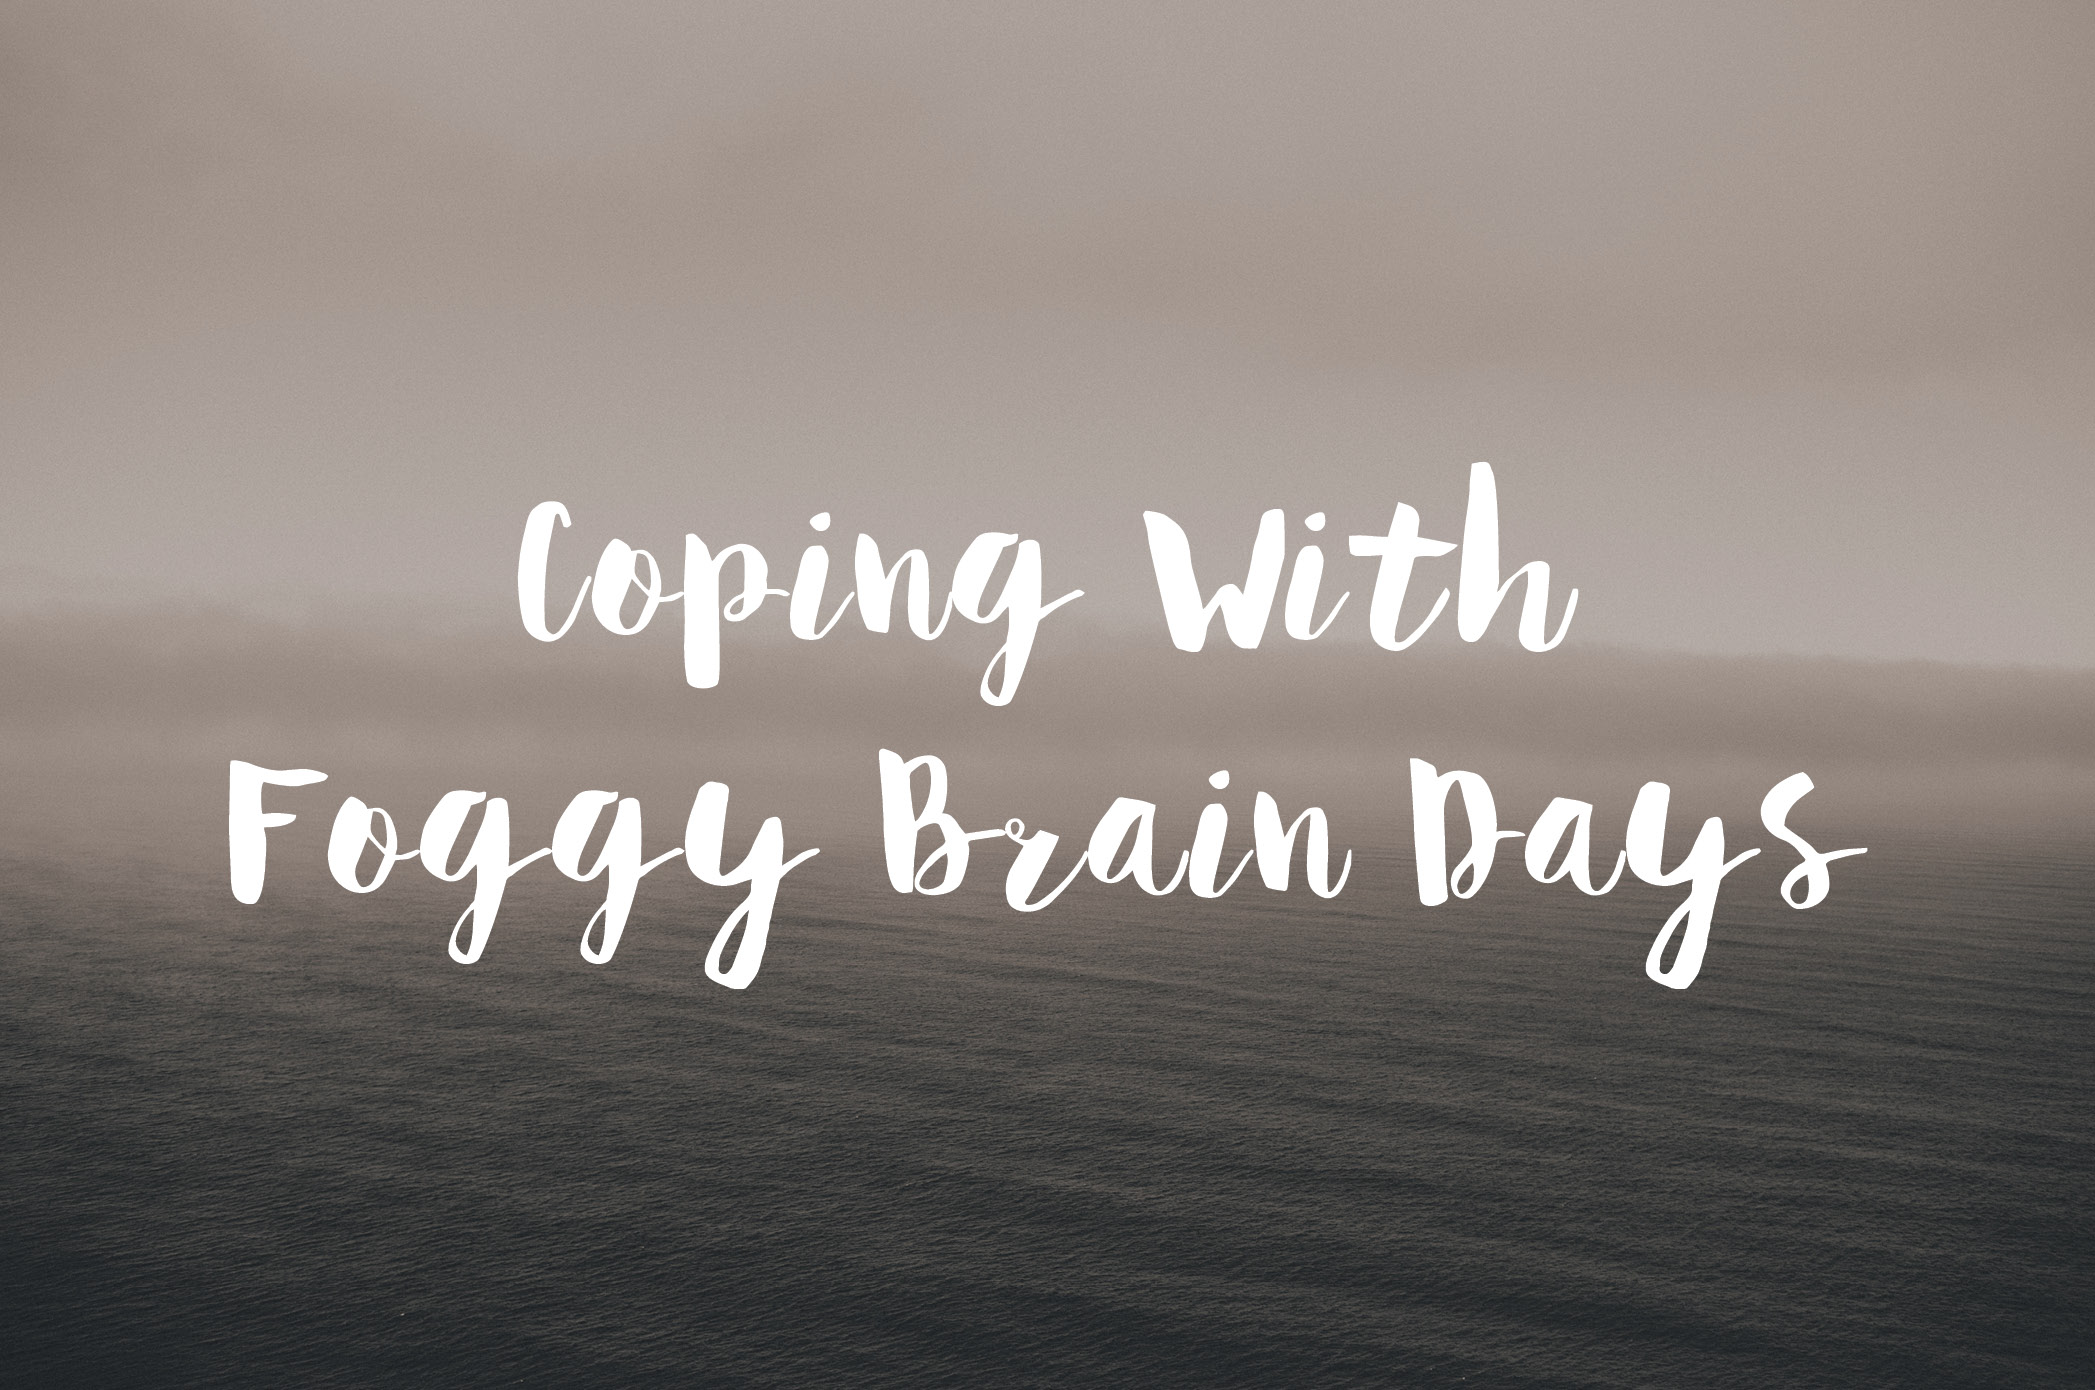 Coping With Foggy Brain Days